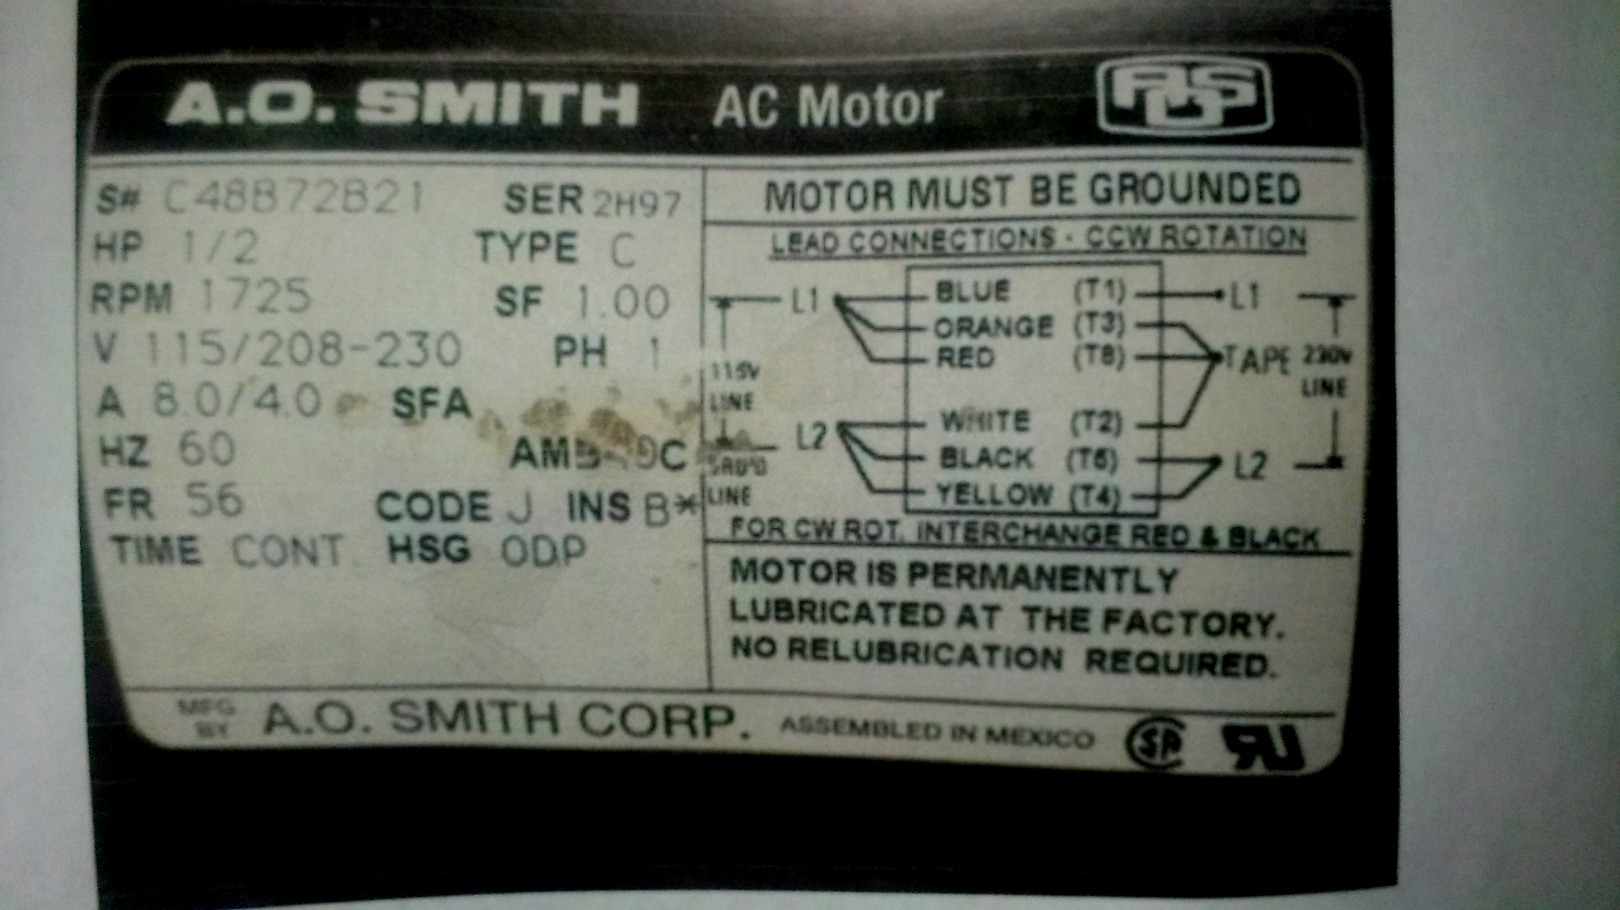 New Ao Smith Motor Wiring Diagram Third Level - Wiringdiagramsdraw - Ao Smith Motor Wiring Diagram